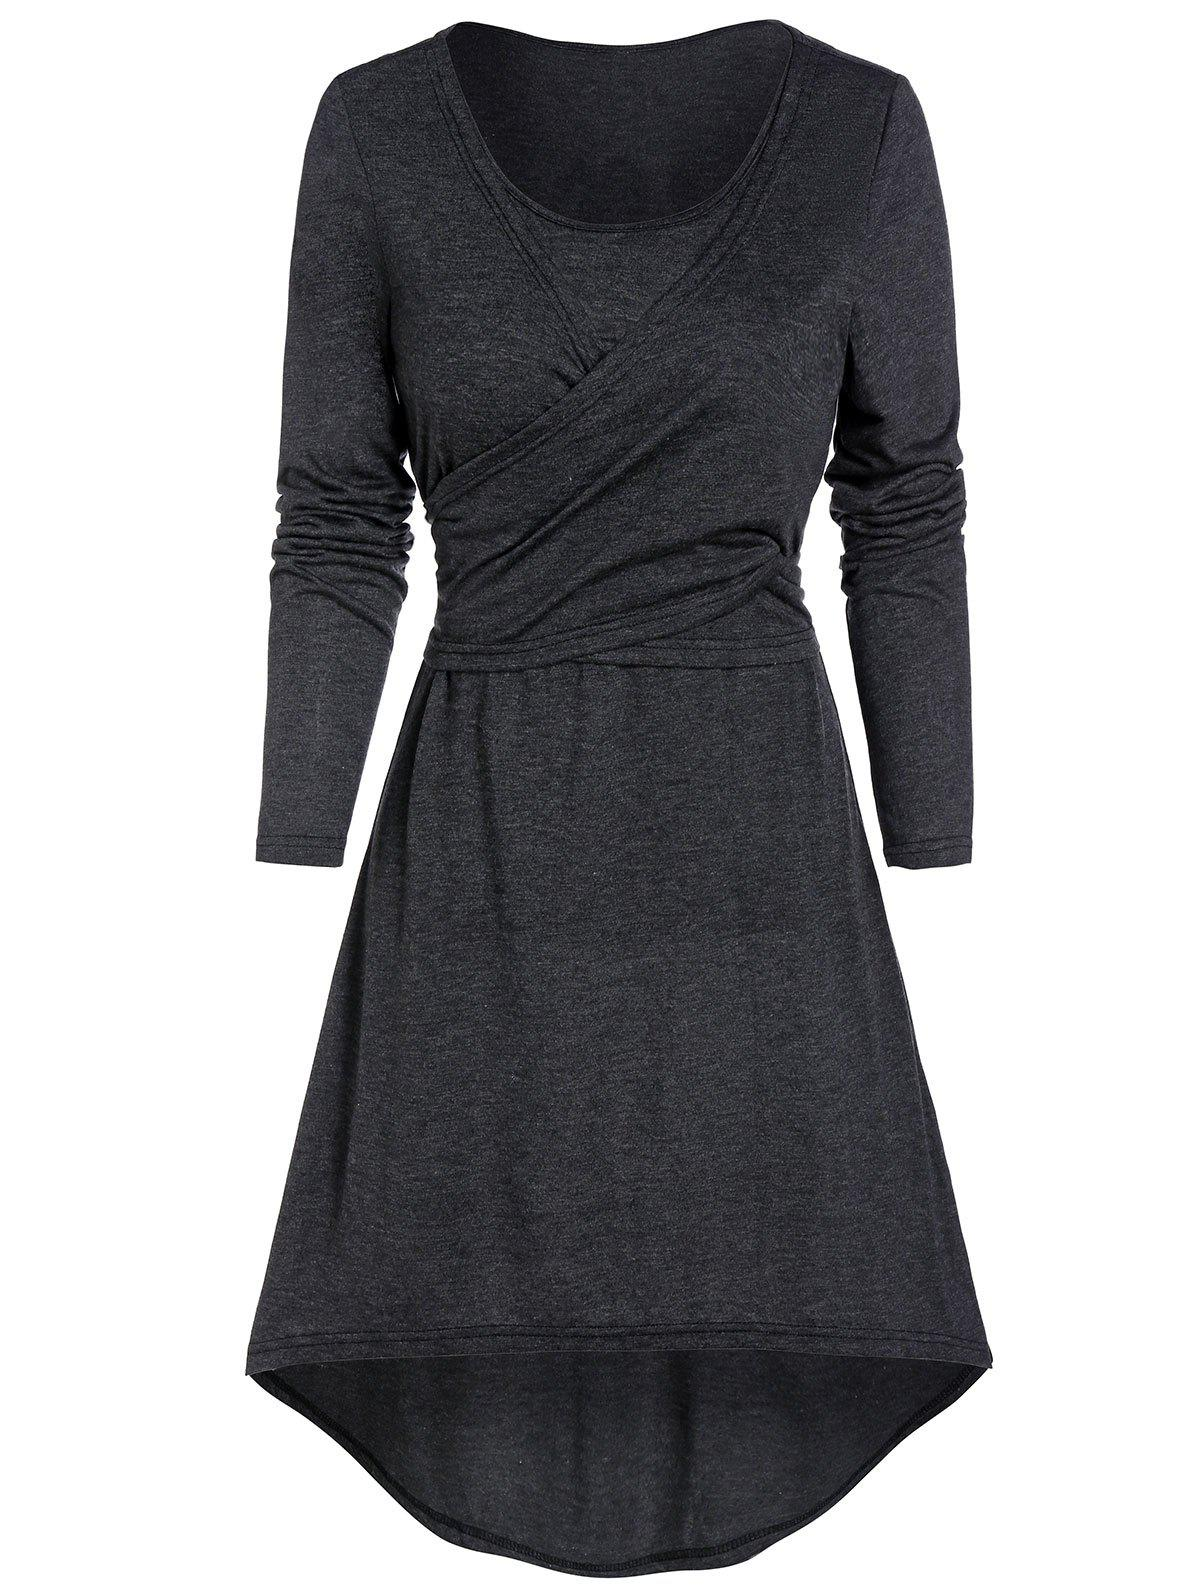 Knotted Wrap Heathered High Low Dress - ASH GRAY M